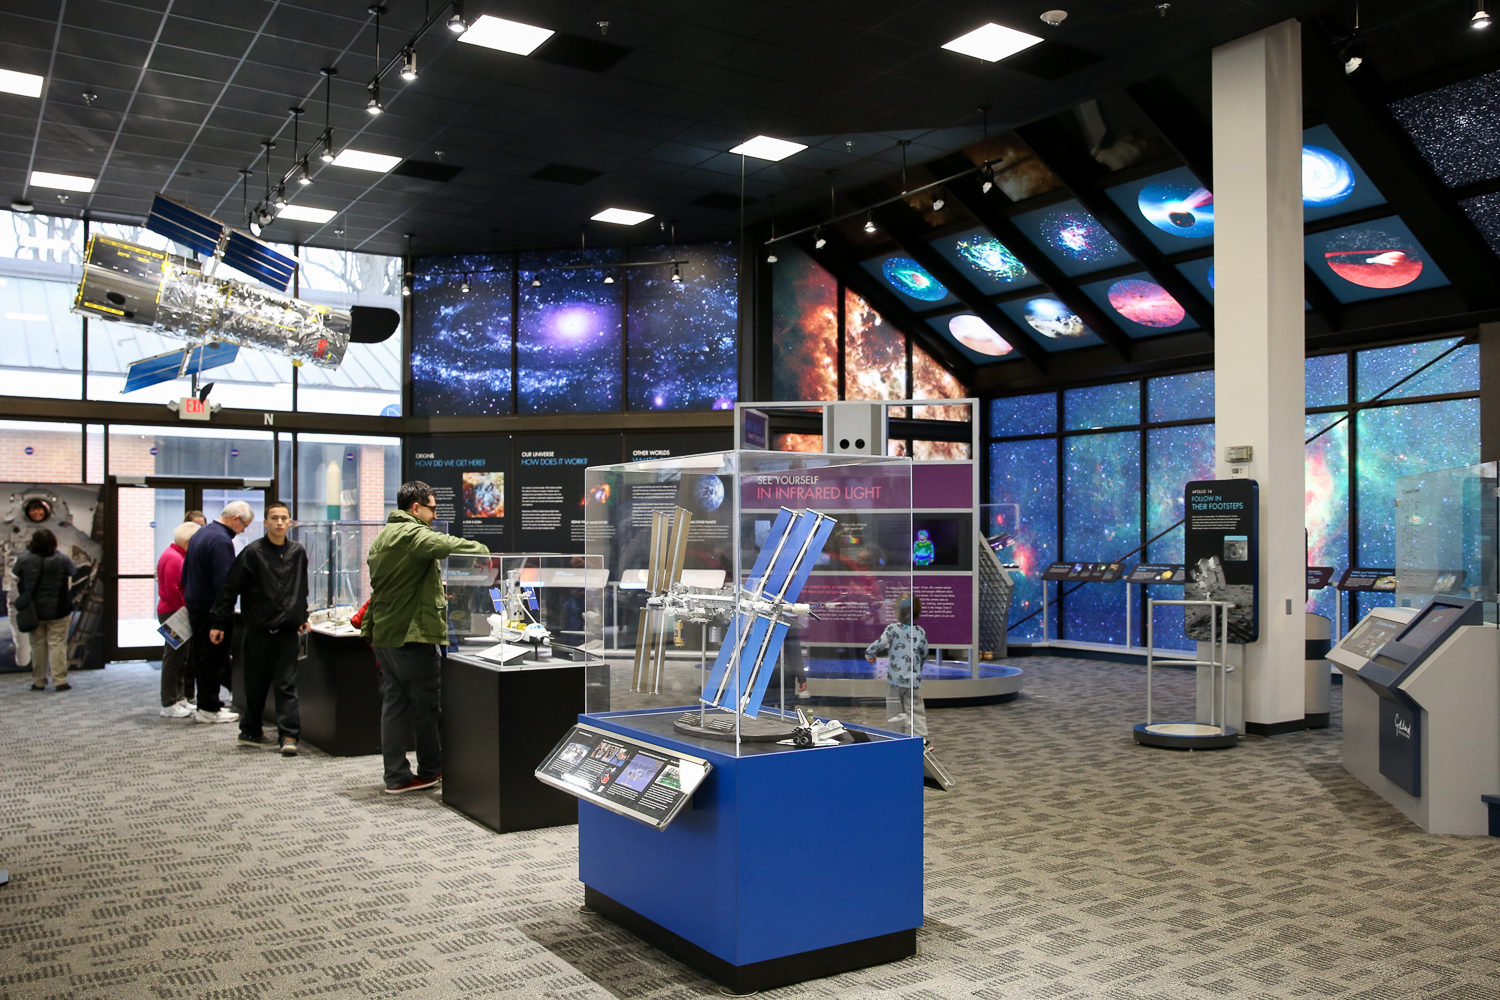 NASA Goddard Visitor Center is about 25 minutes outside of D.C., but this super interactive mini-museum is definitely worth the trek. In addition to high-tech displays and ultra-cool visuals, the Goddard Visitor Center offers straight forward information on NASA's role and contributions. The current exhibits also explore earth science in terms that are interesting enough for curious adults but still accessible for kids. Just outside the free exhibits, you can also get up close to space equipment and enjoy lunch on one of the many picnic tables. (Amanda Andrade-Rhoades/DC Refined)